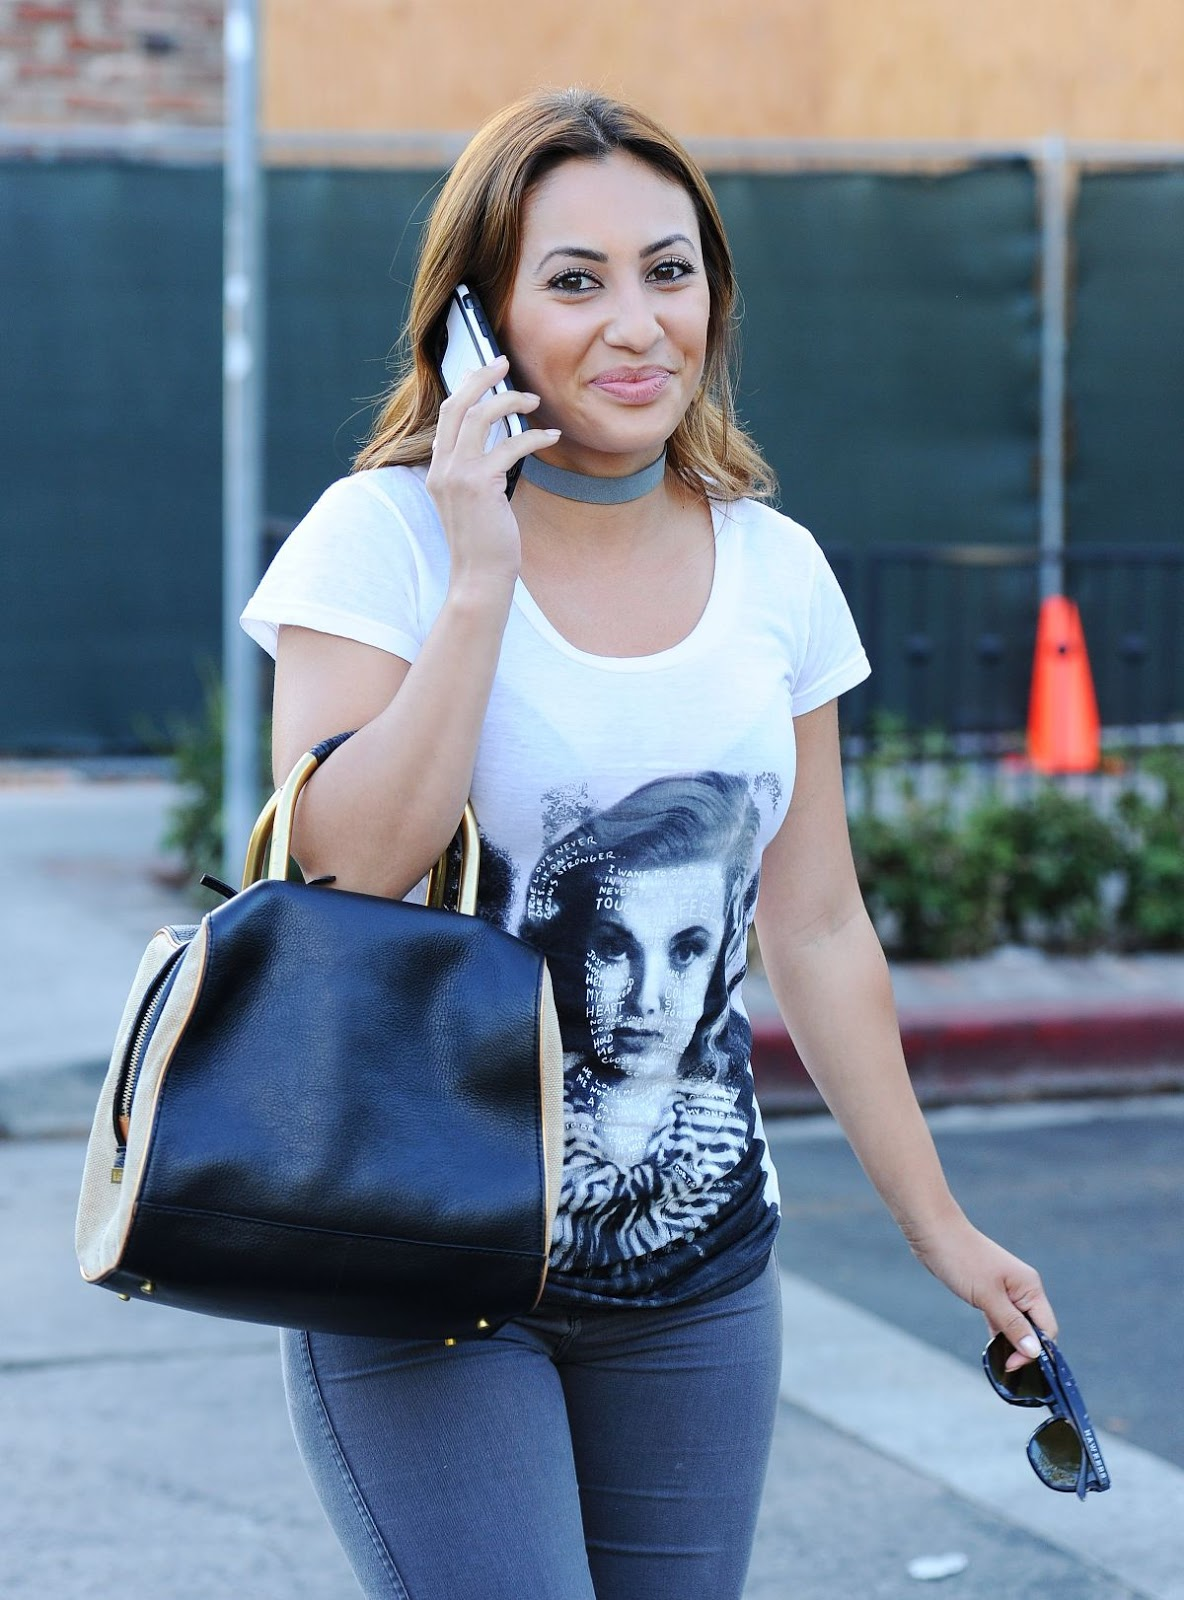 francia raisa booty in jeans out in beverly hills july 13